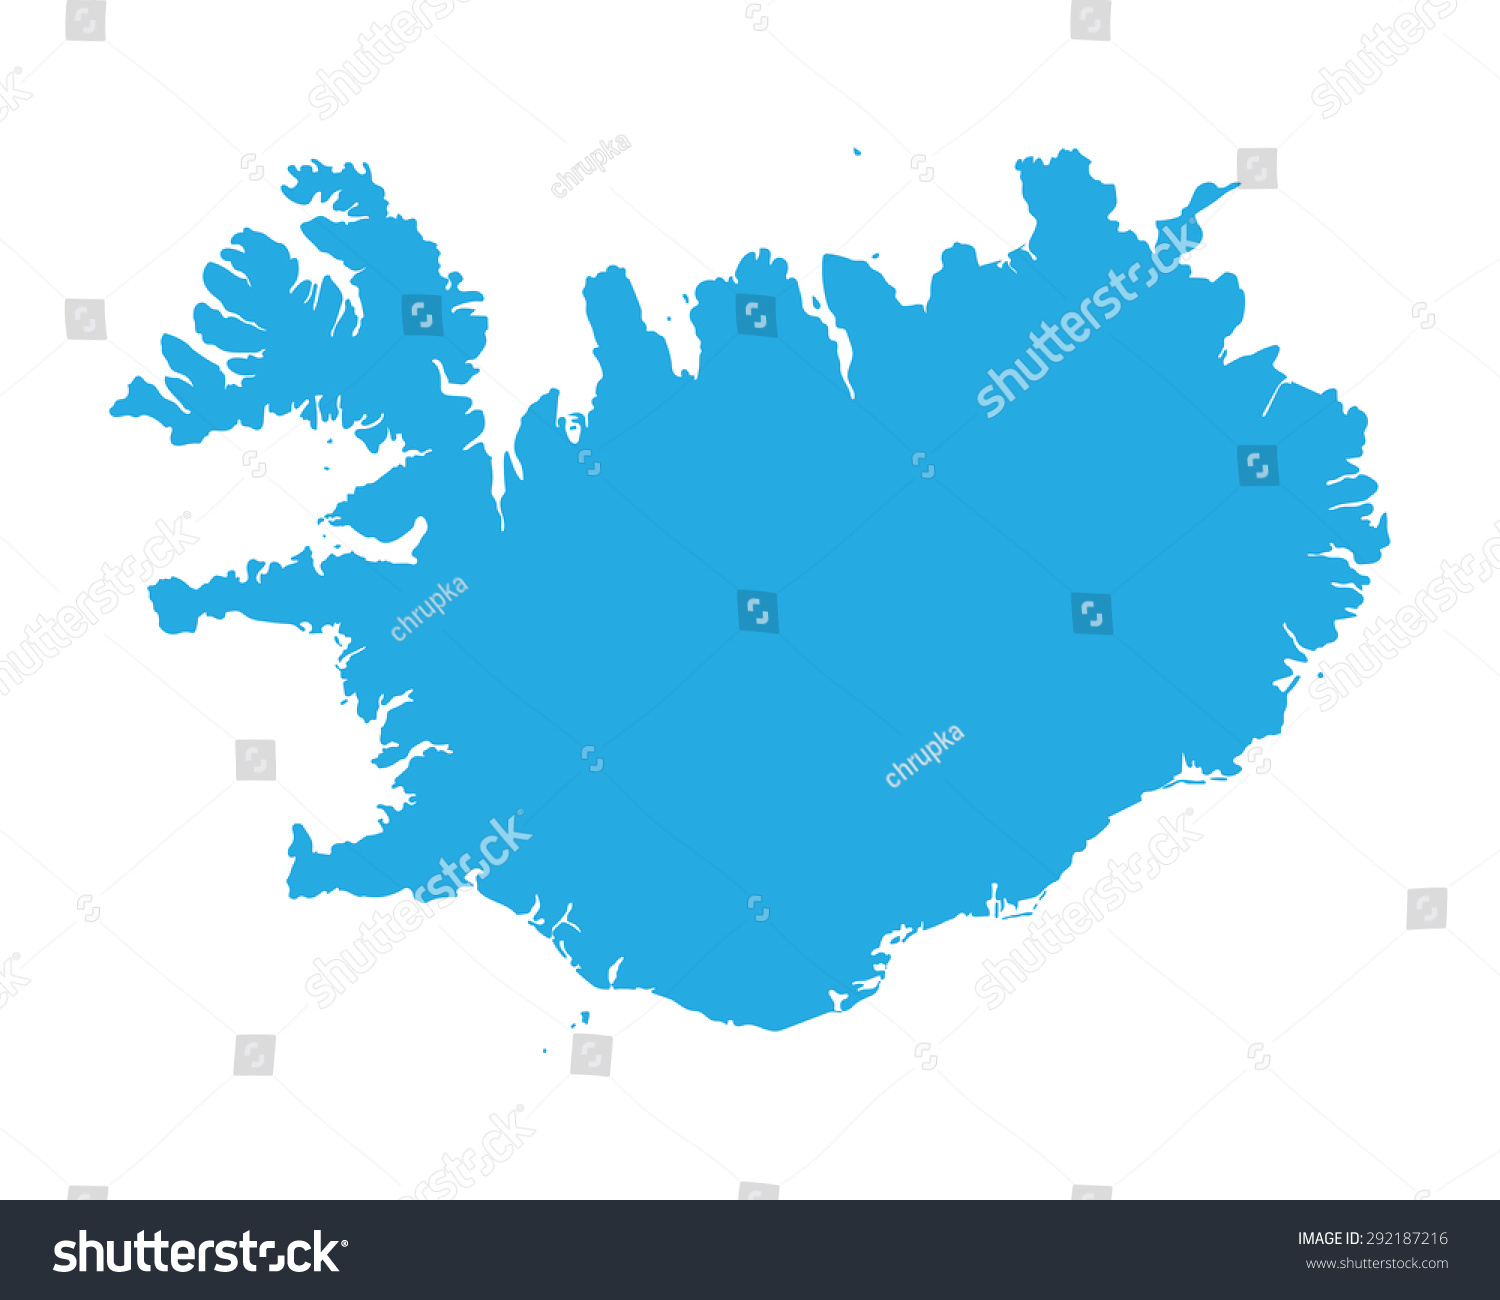 Blue Map Iceland Stock Vector (Royalty Free) 292187216 - Shutterstock